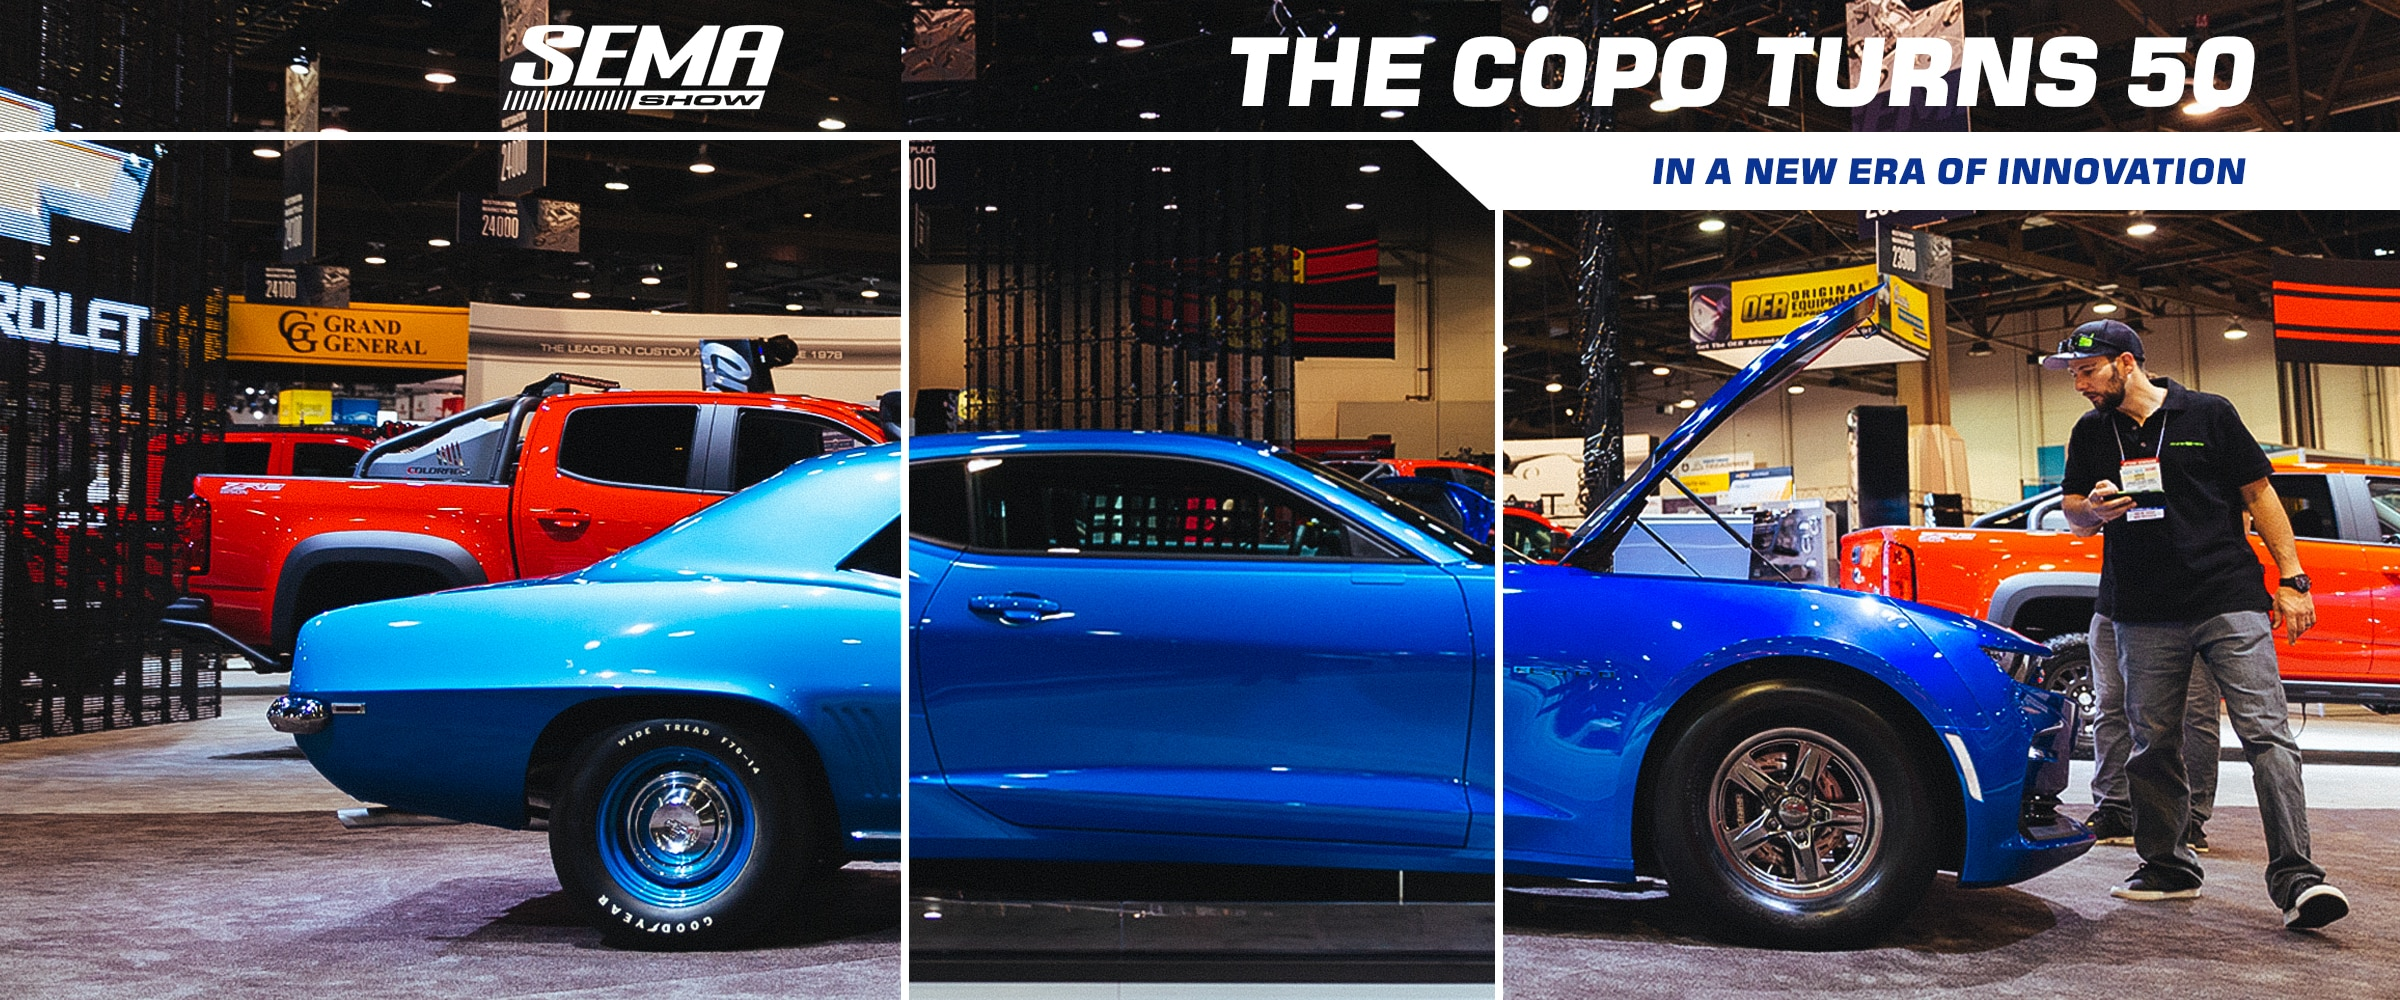 Vehicles, Parts, News, Events, Chevrolet Performance, Chevy, Chevrolet, Engines, Crate Engines, COPO, COPO Camaro, 427 N/A Anniversary COPO Crate Engine, 427, Naturally Aspirated, E-COPO, 2019 COPO